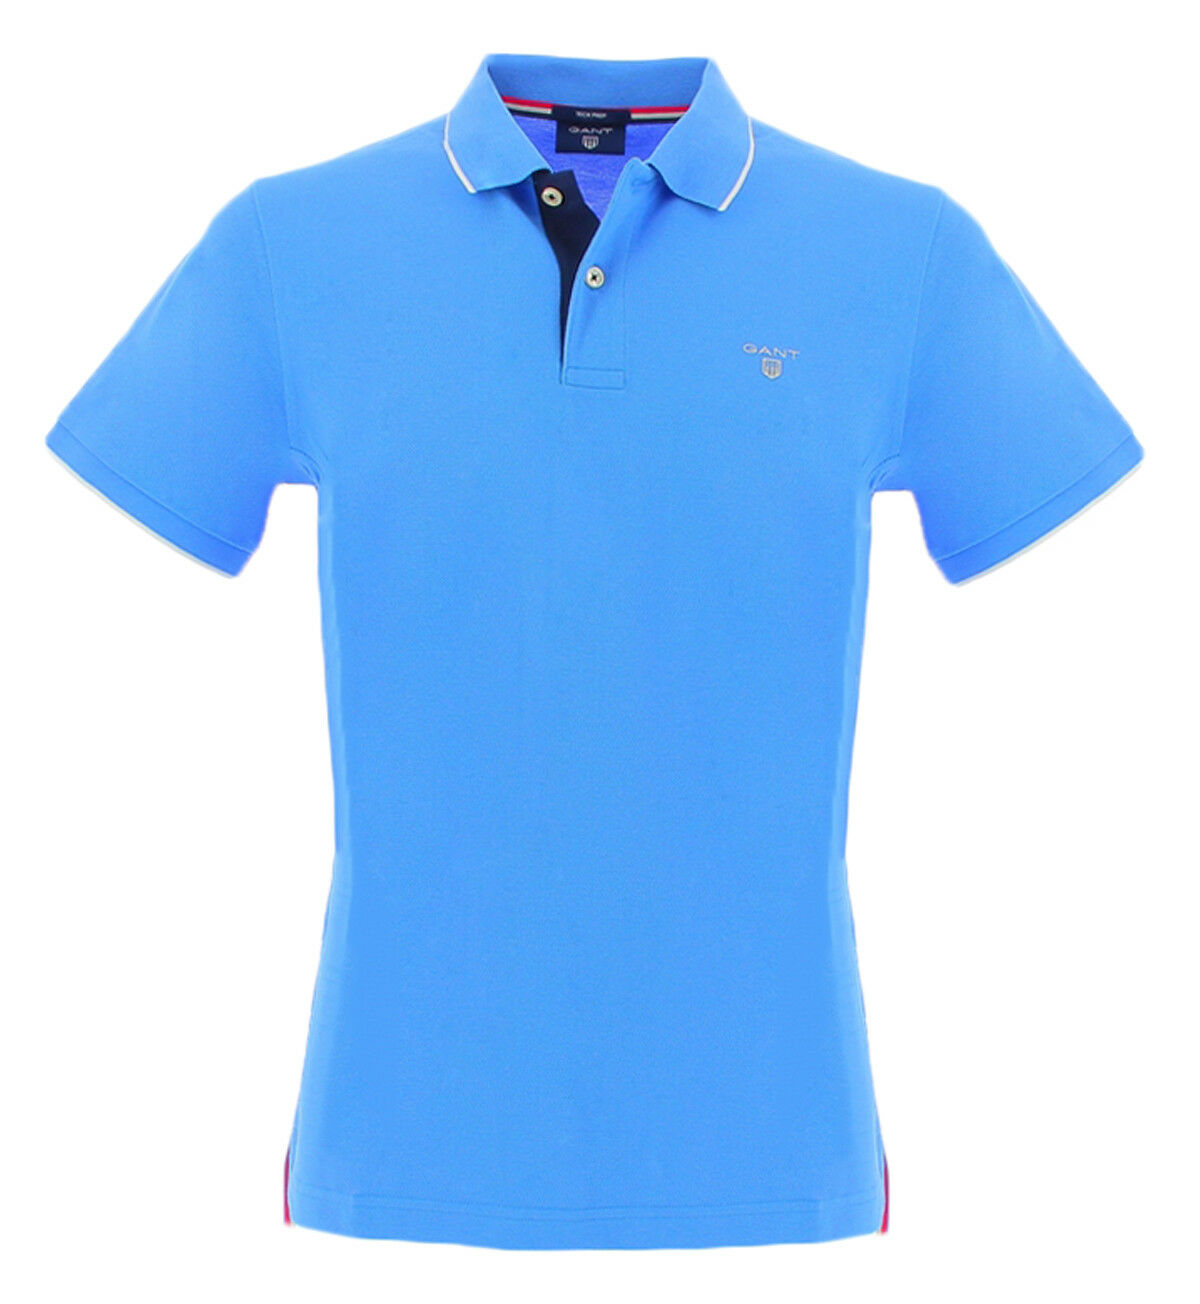 Gant 2012000445 PACIFIC blue Gant men's light bluee and cotton poloshirt